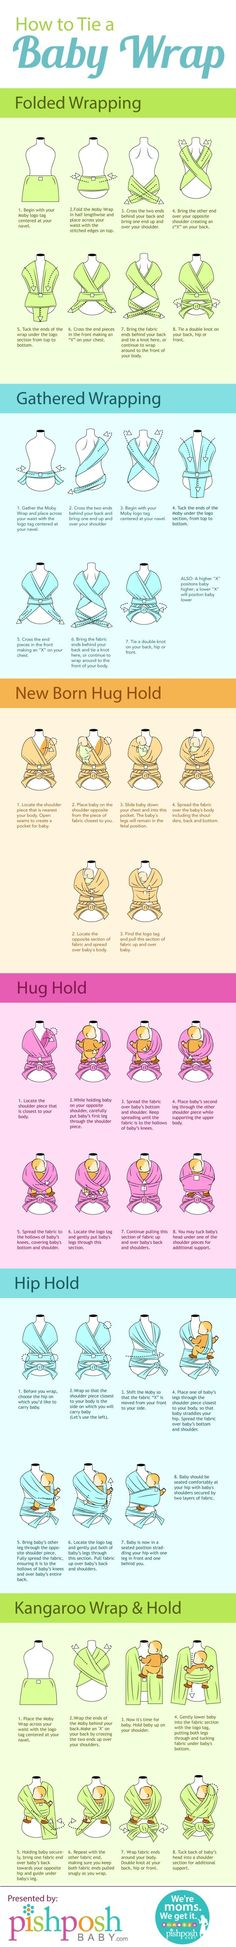 http://www.onlinetoyretailers.com/category/baby-carrier/ Baby wearing